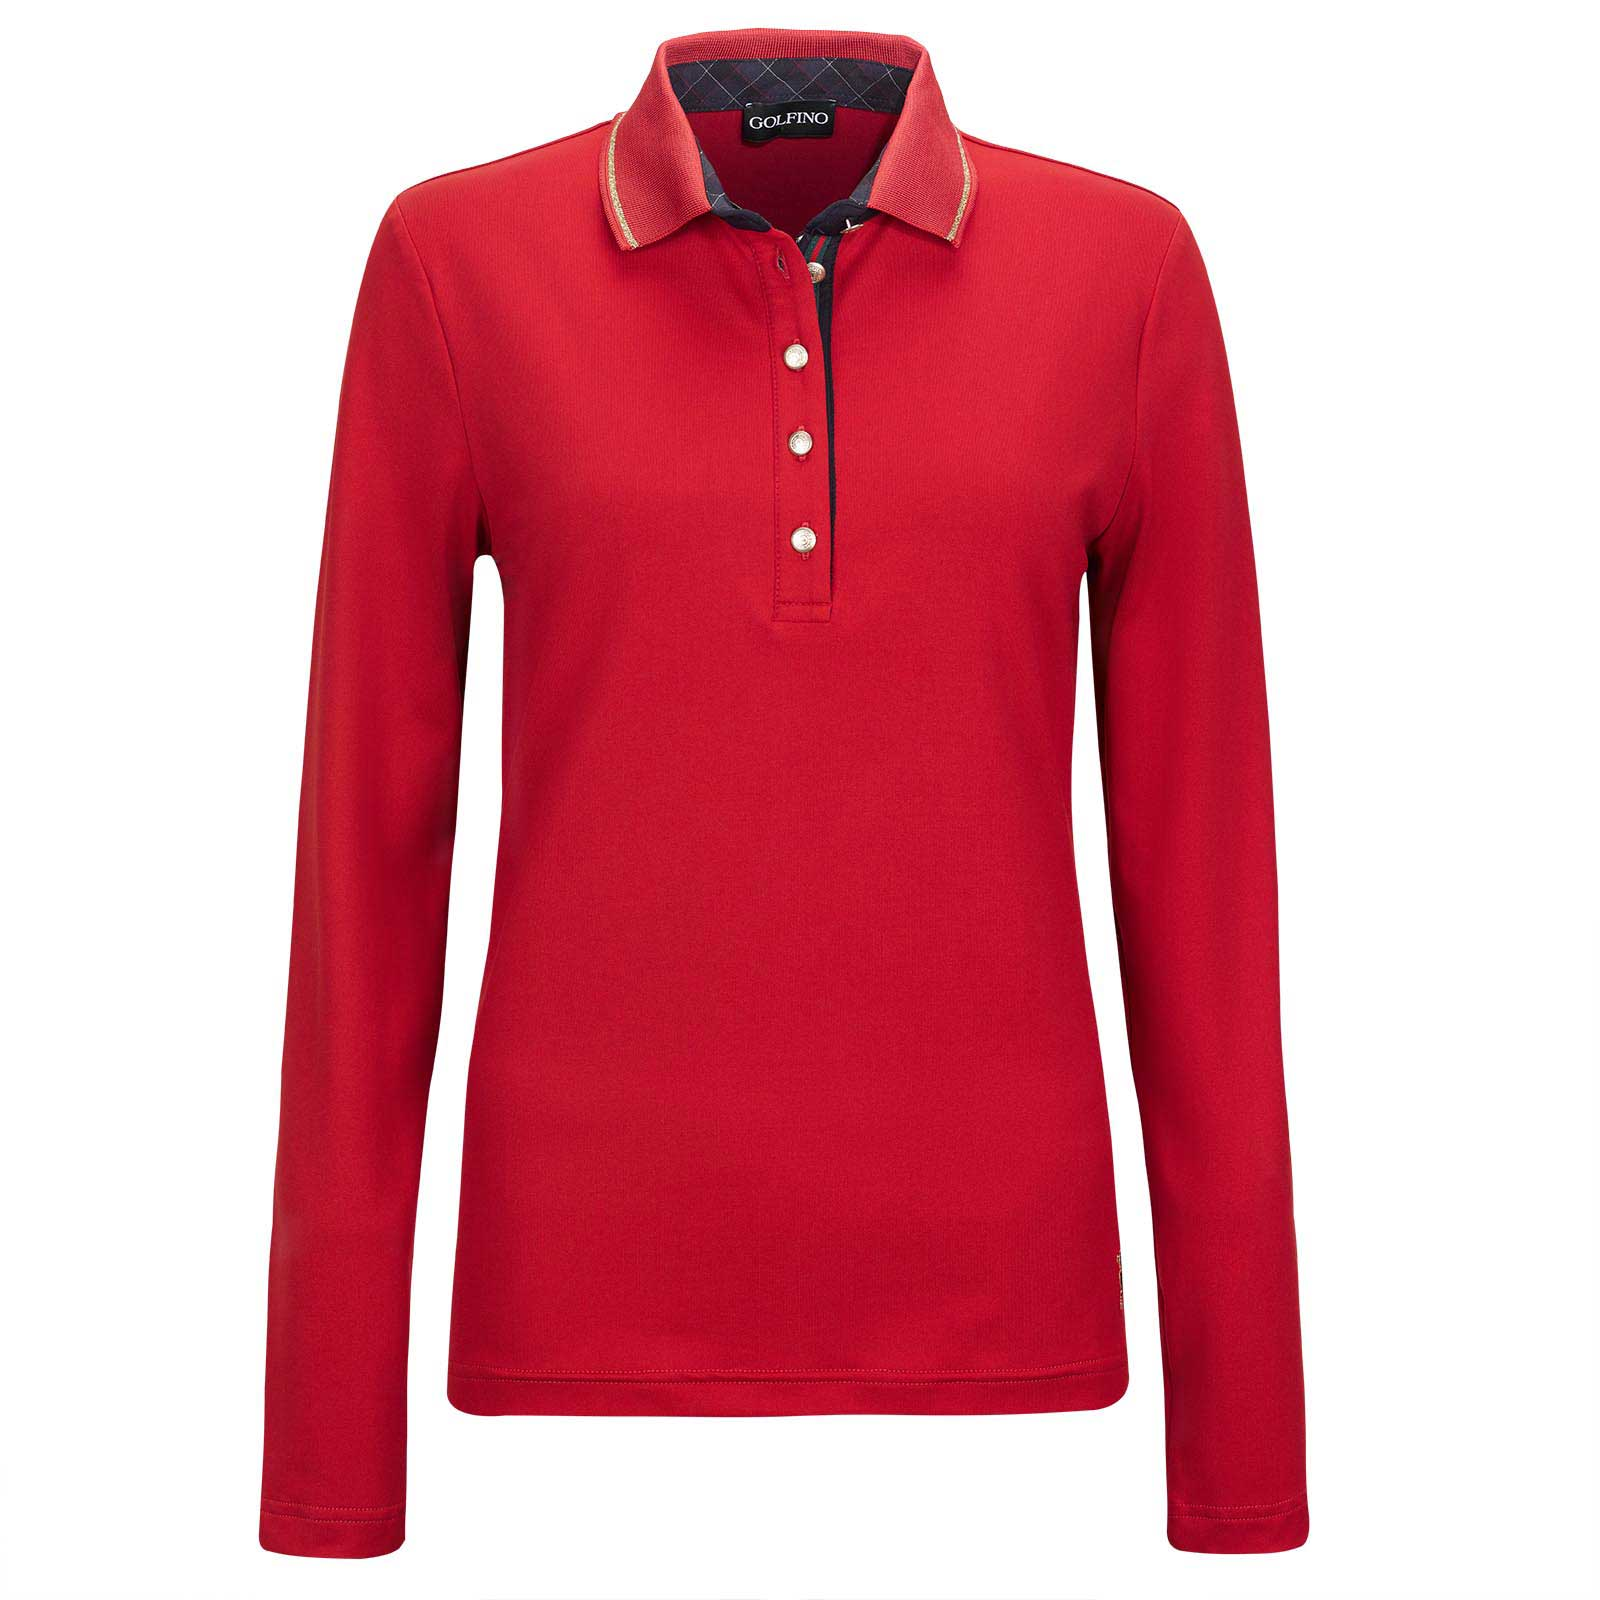 Women's long-sleeve golf polo with Moisture Management and golden details